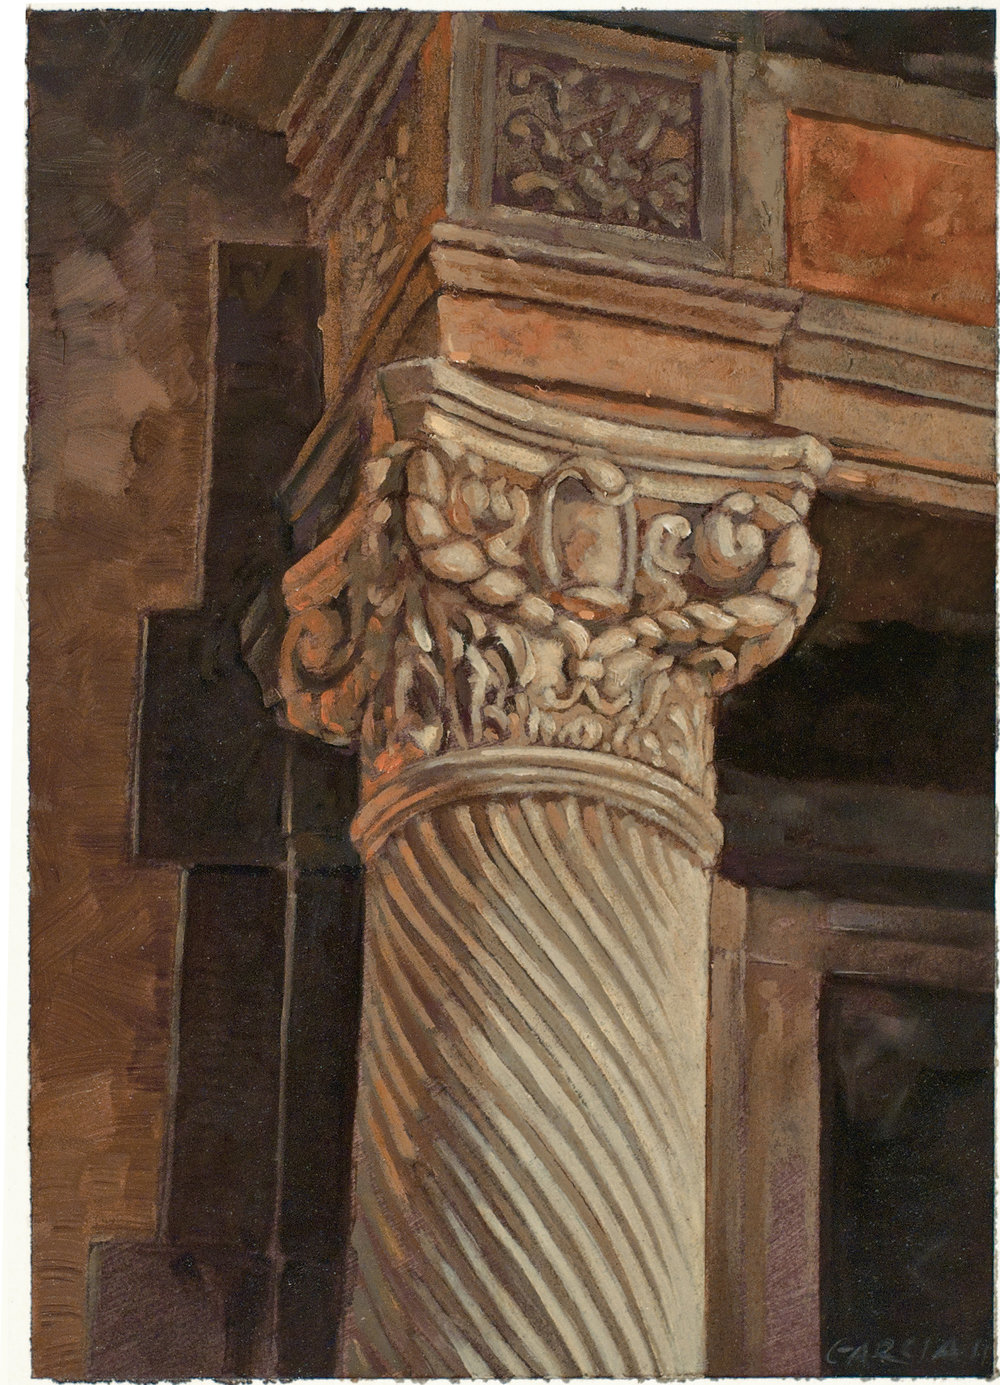 Entry Column design by architect Reginal Johnson